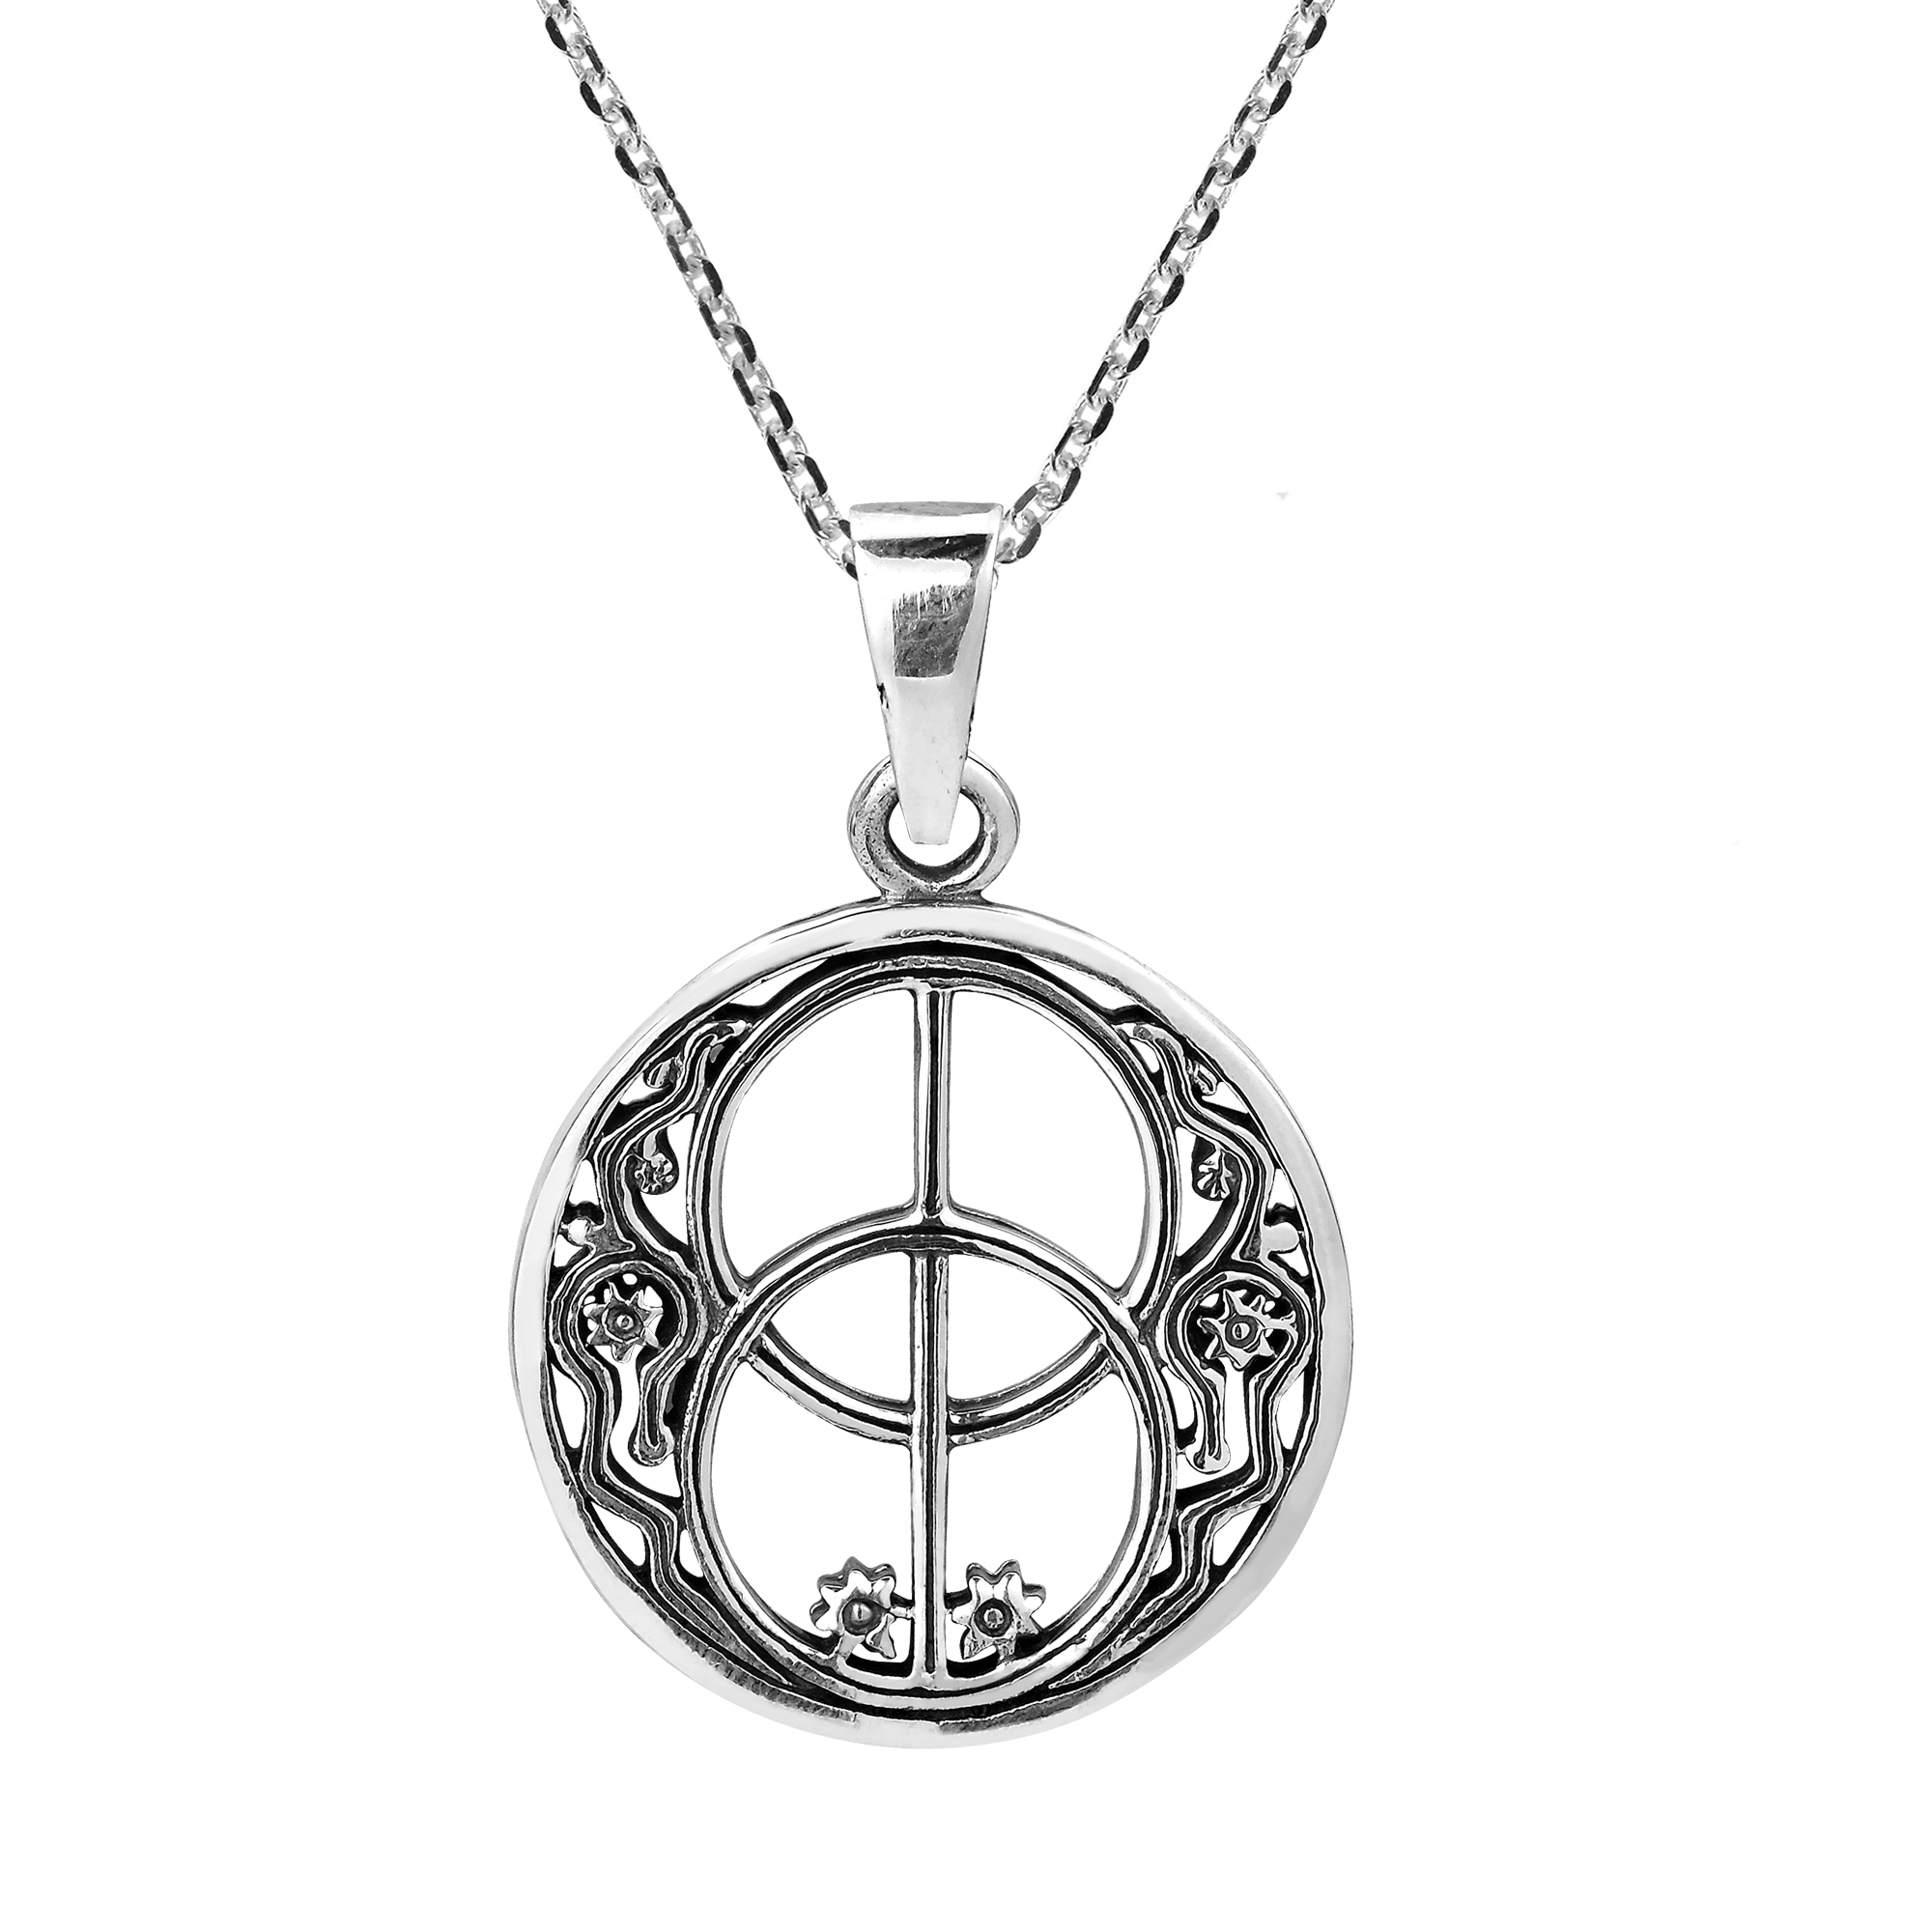 spiritual sun necklace reiki itm is image stone chakra pendant energy loading